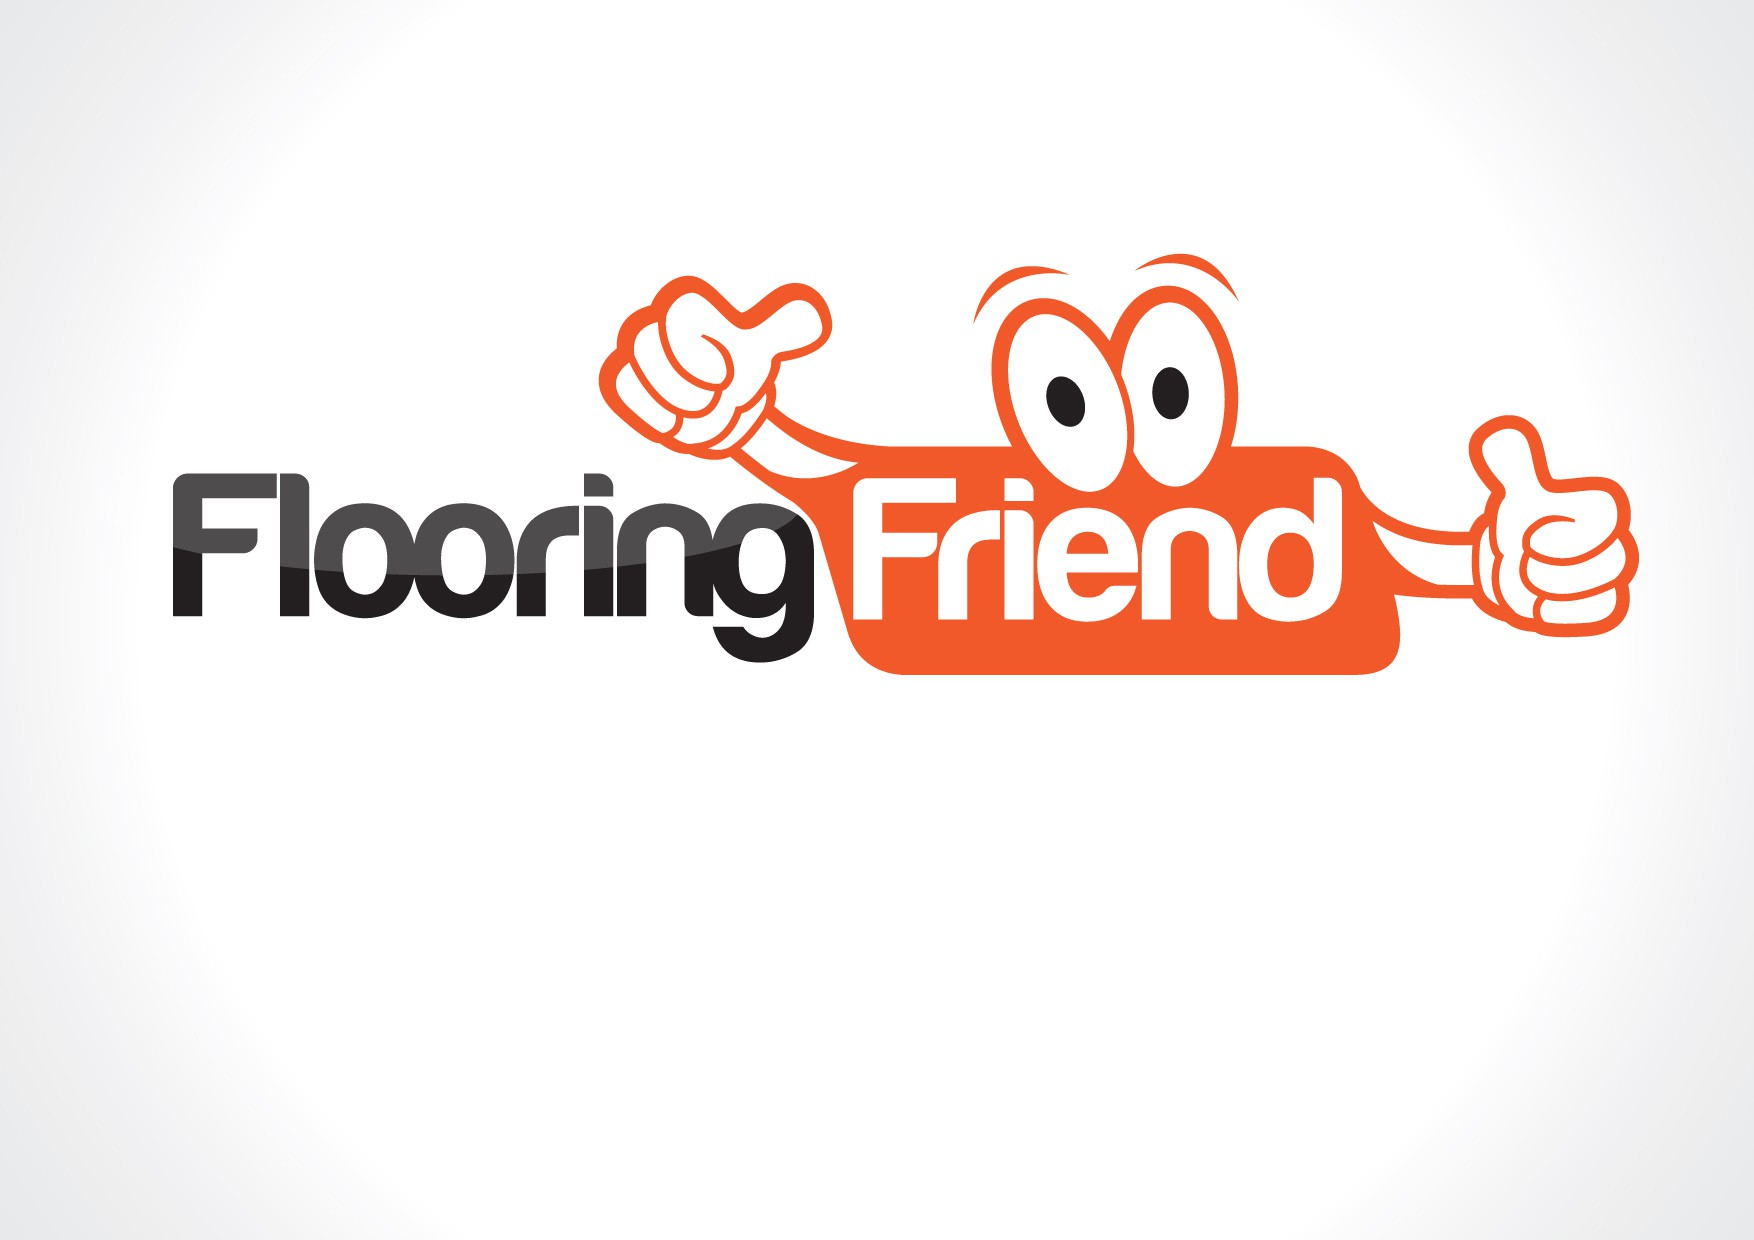 New logo wanted for Flooring Friend